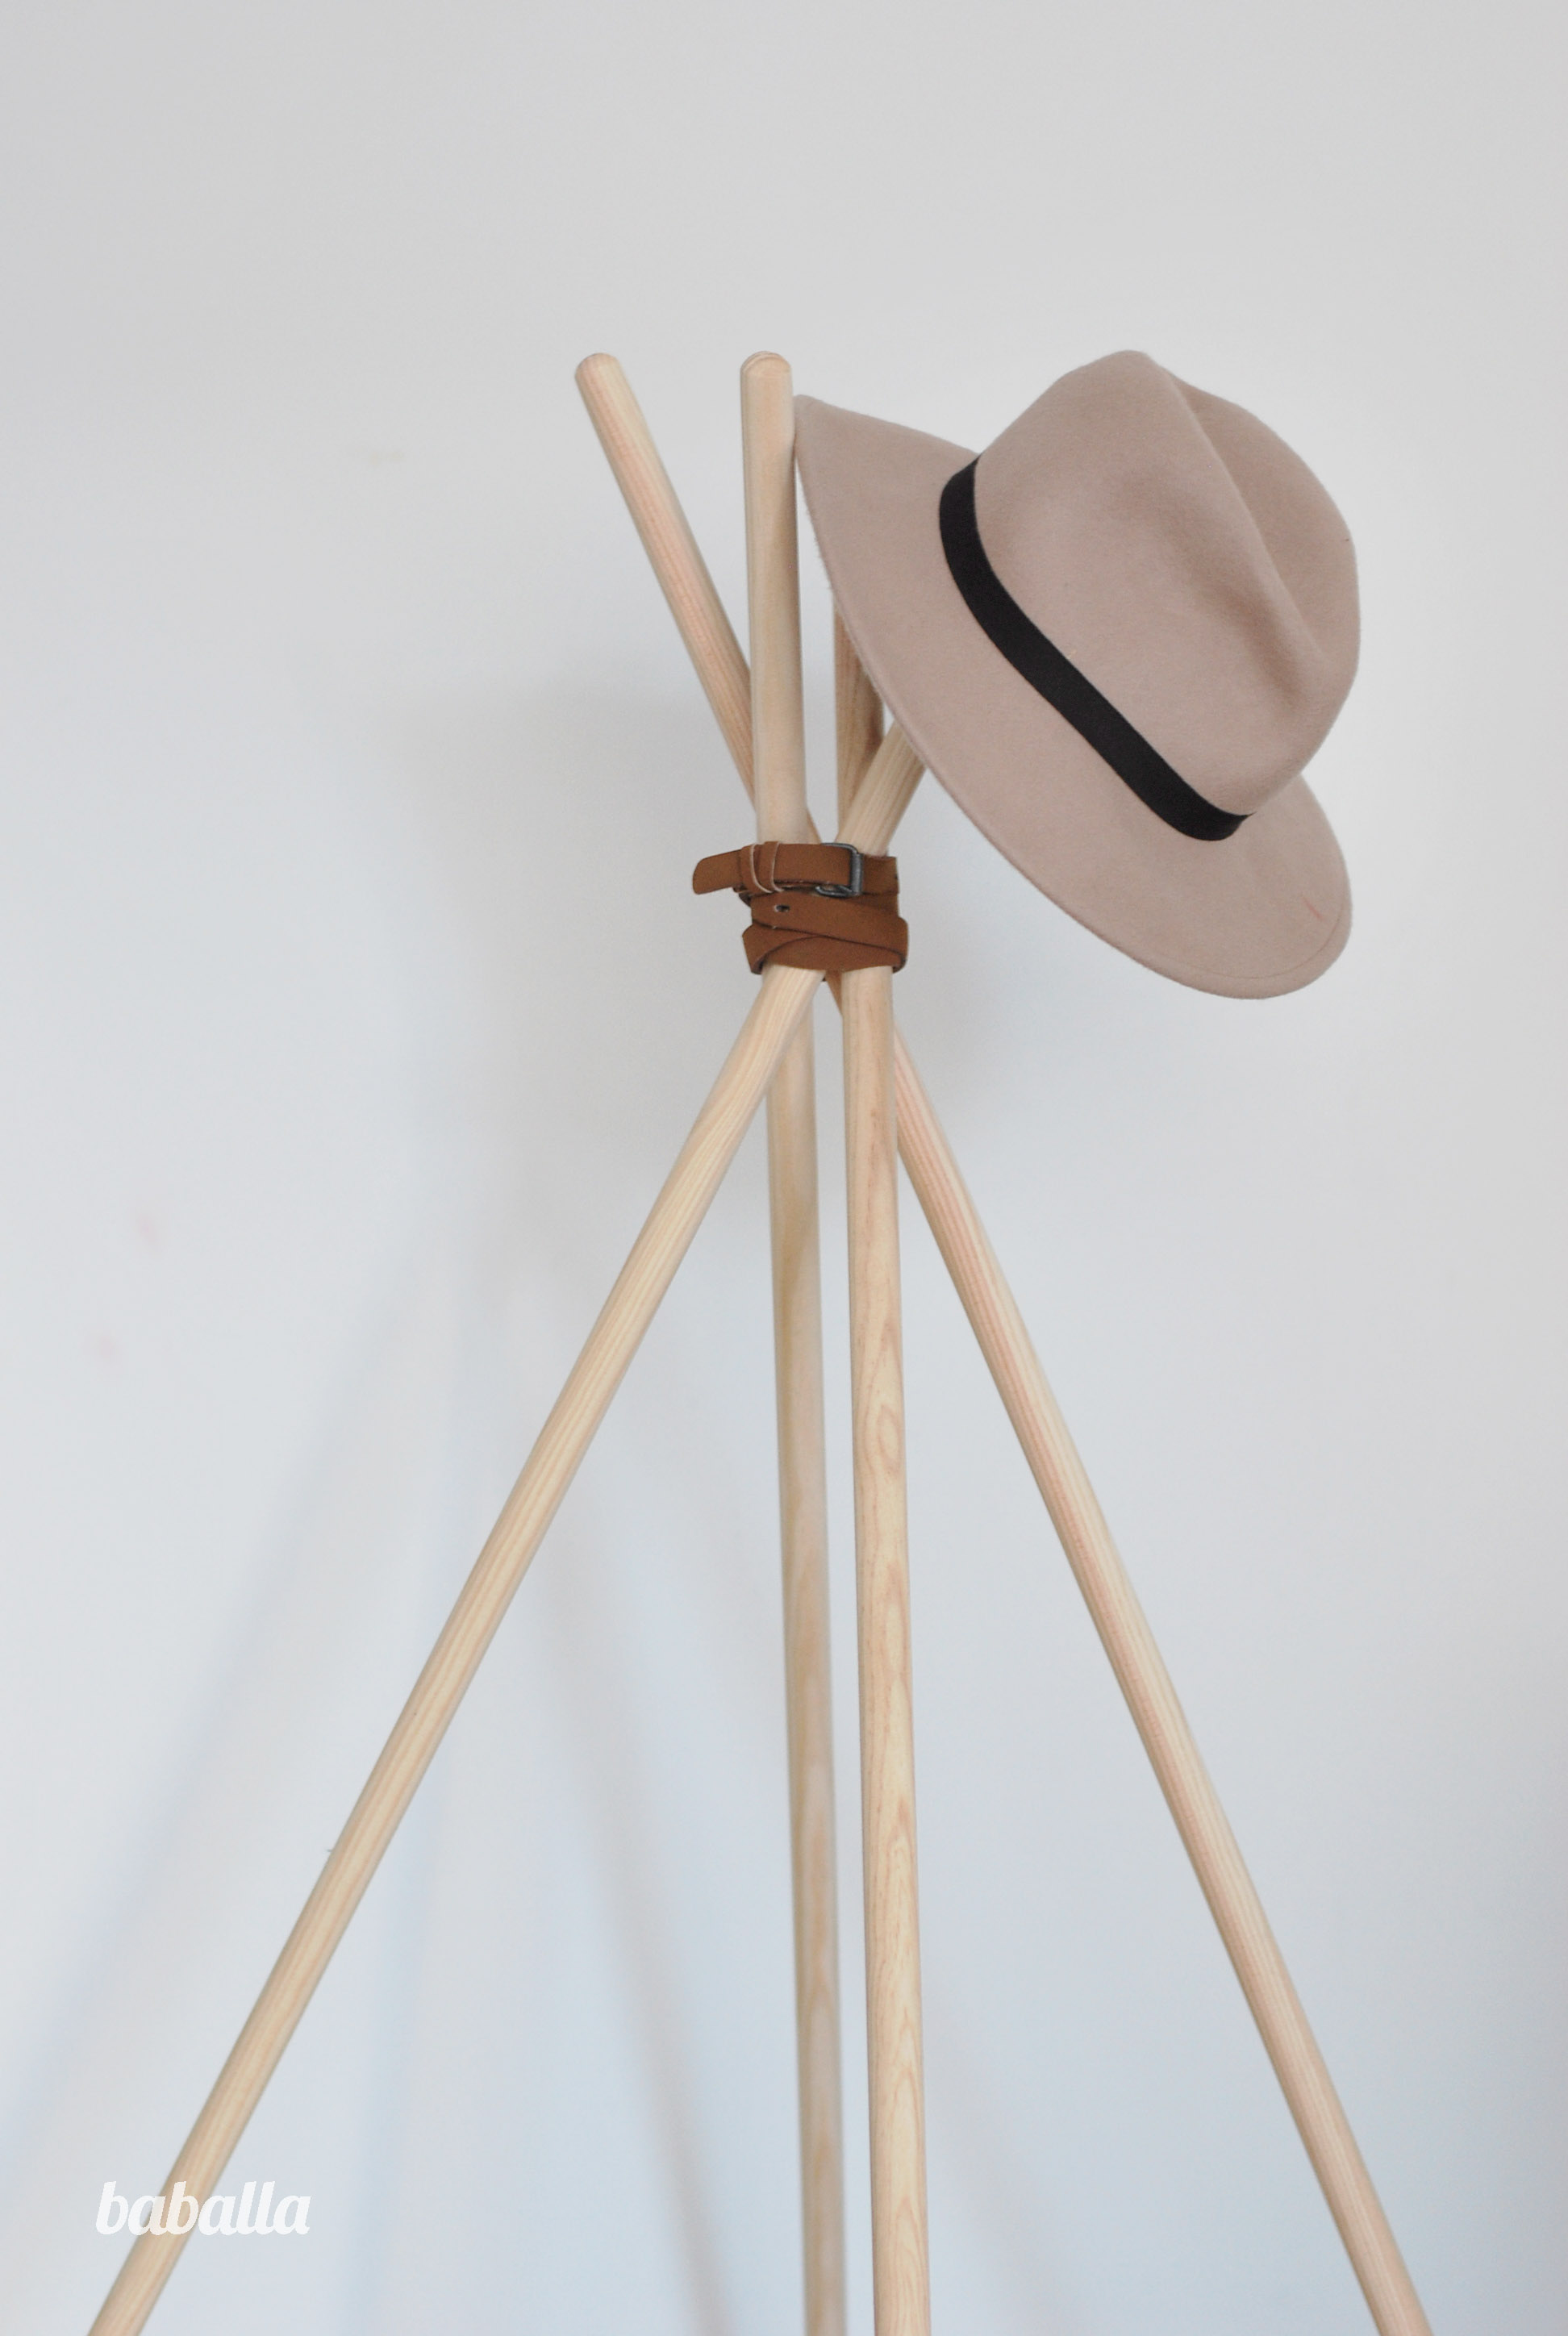 diy perchero tipi diy baballa